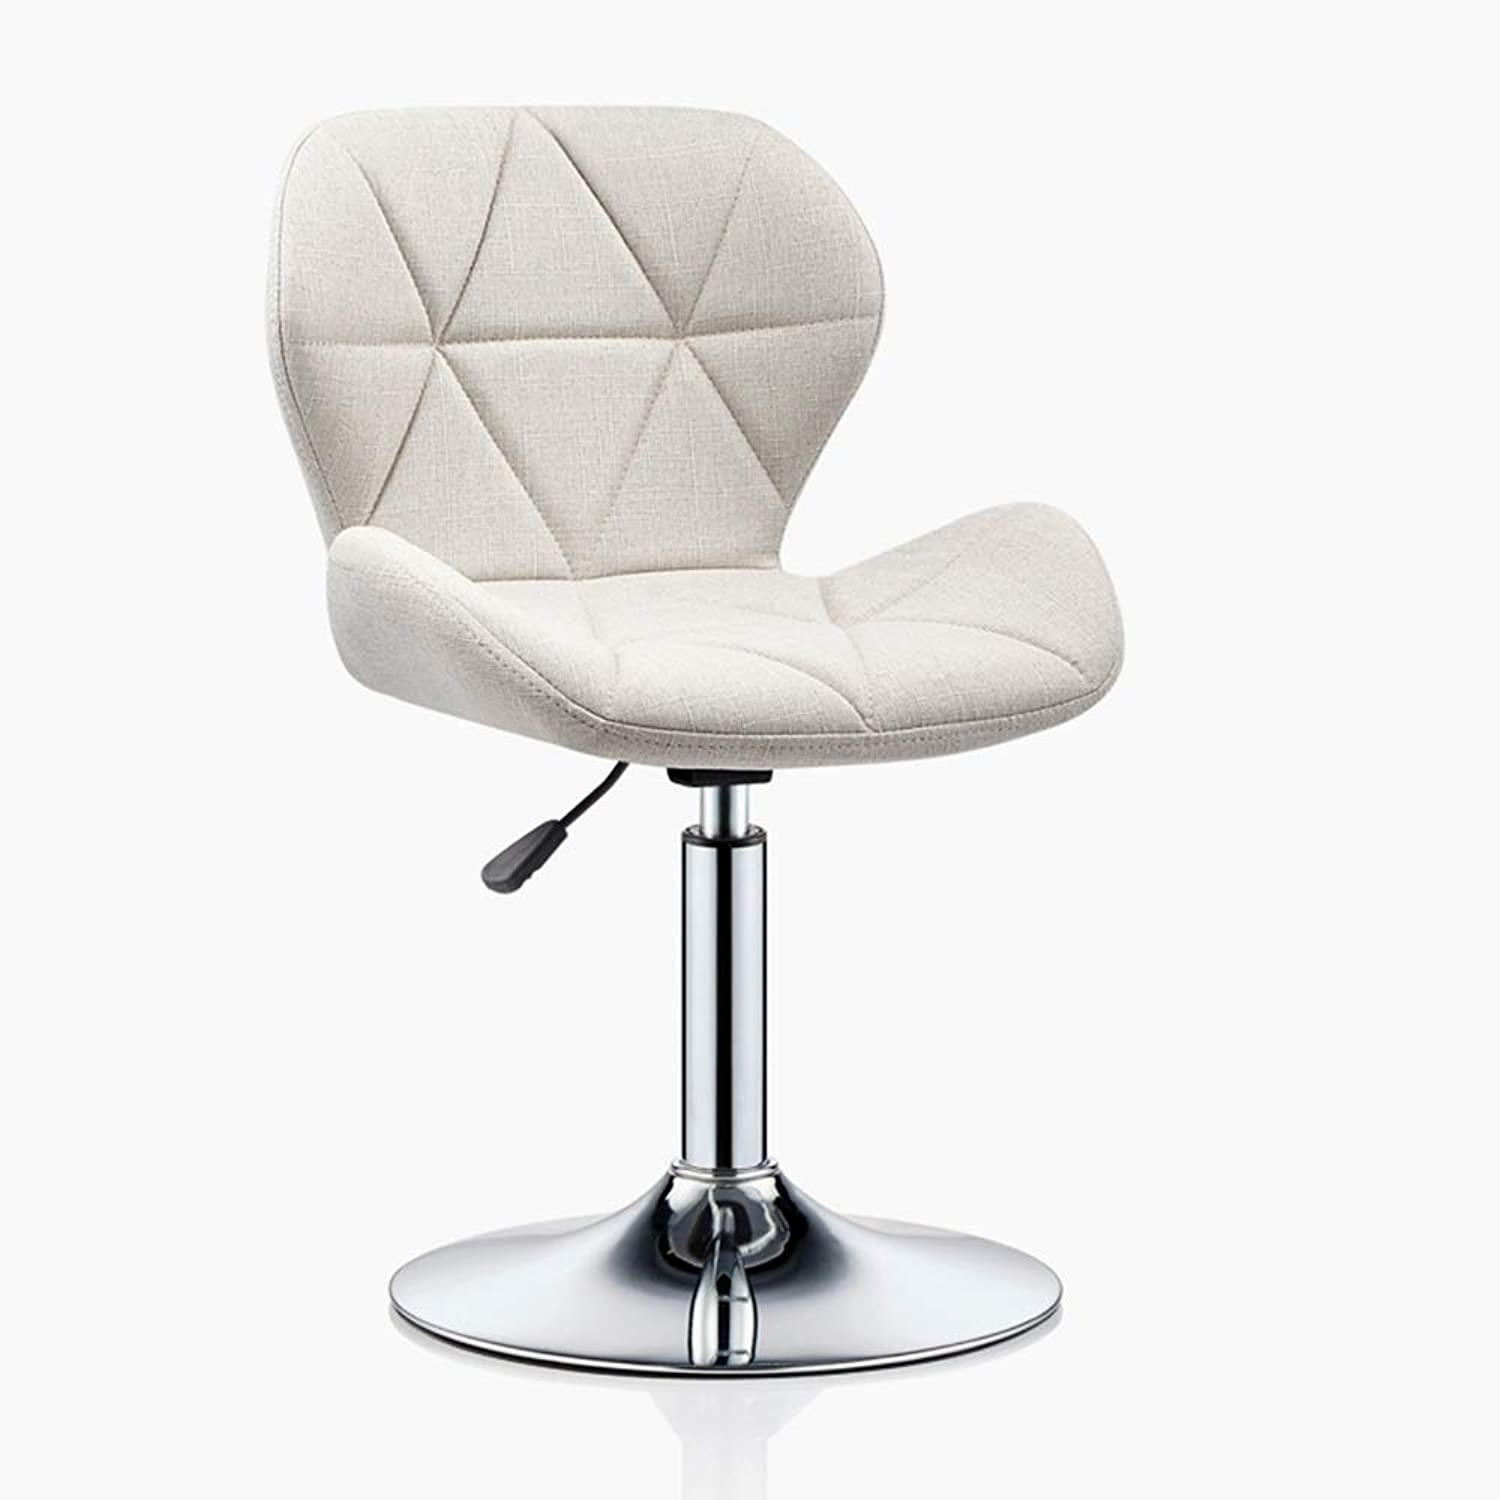 LJHA Swivel Chair - Bar Chair Can Be Raised and Lowered (60-115cm) Cotton and Linen High Footstool Leisure Chair (color   bluee)